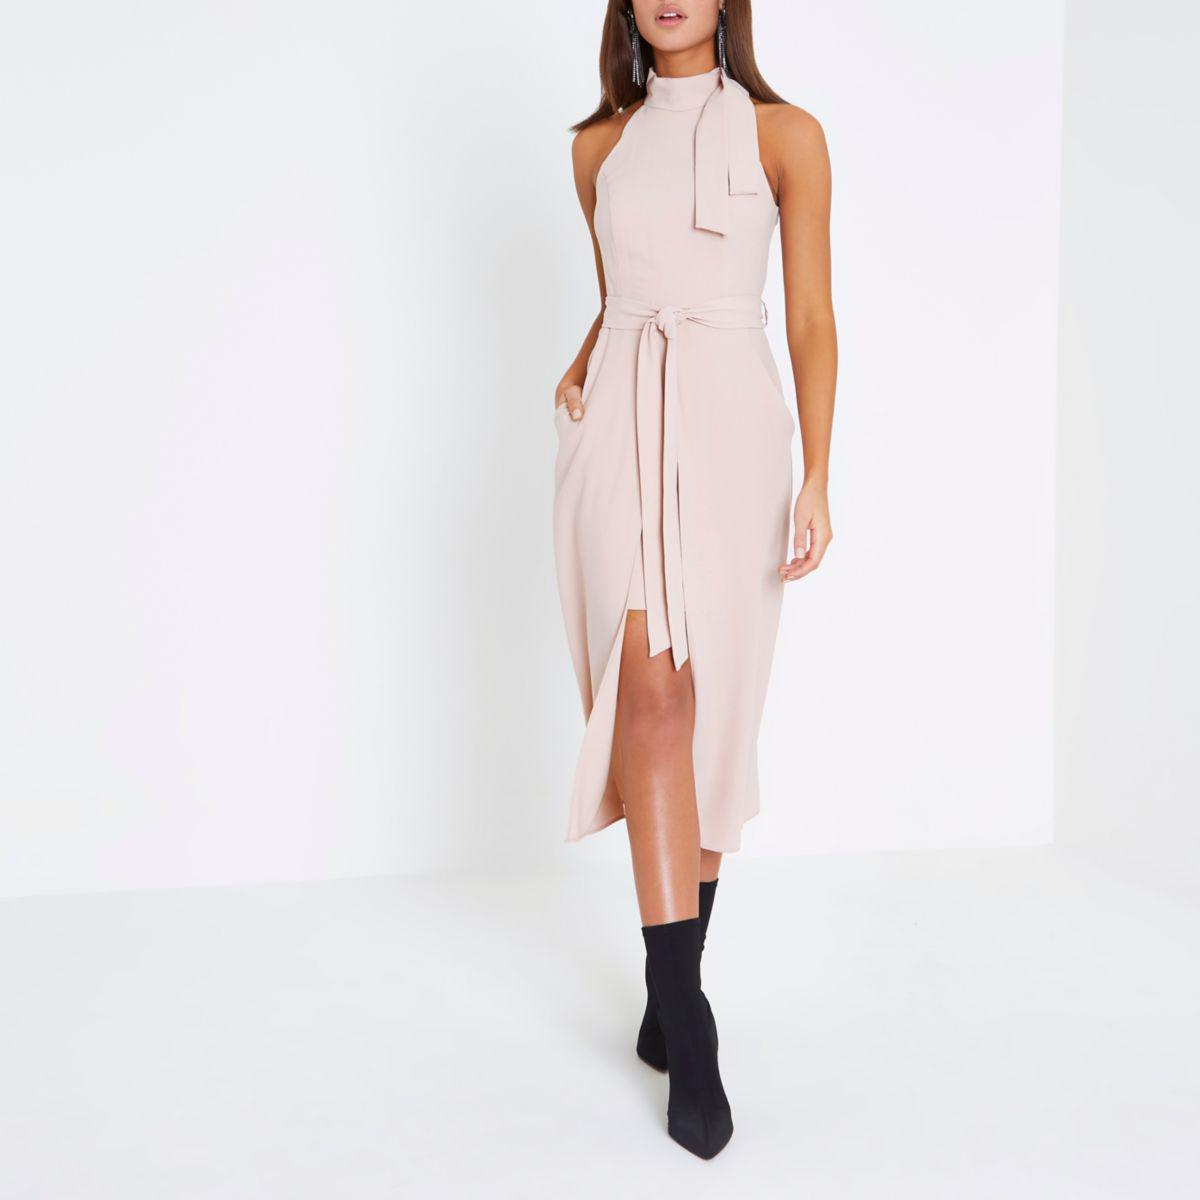 fff24c5fcf7 Lyst - River Island Light Pink High Neck Tie Waist Midi Dress Light ...